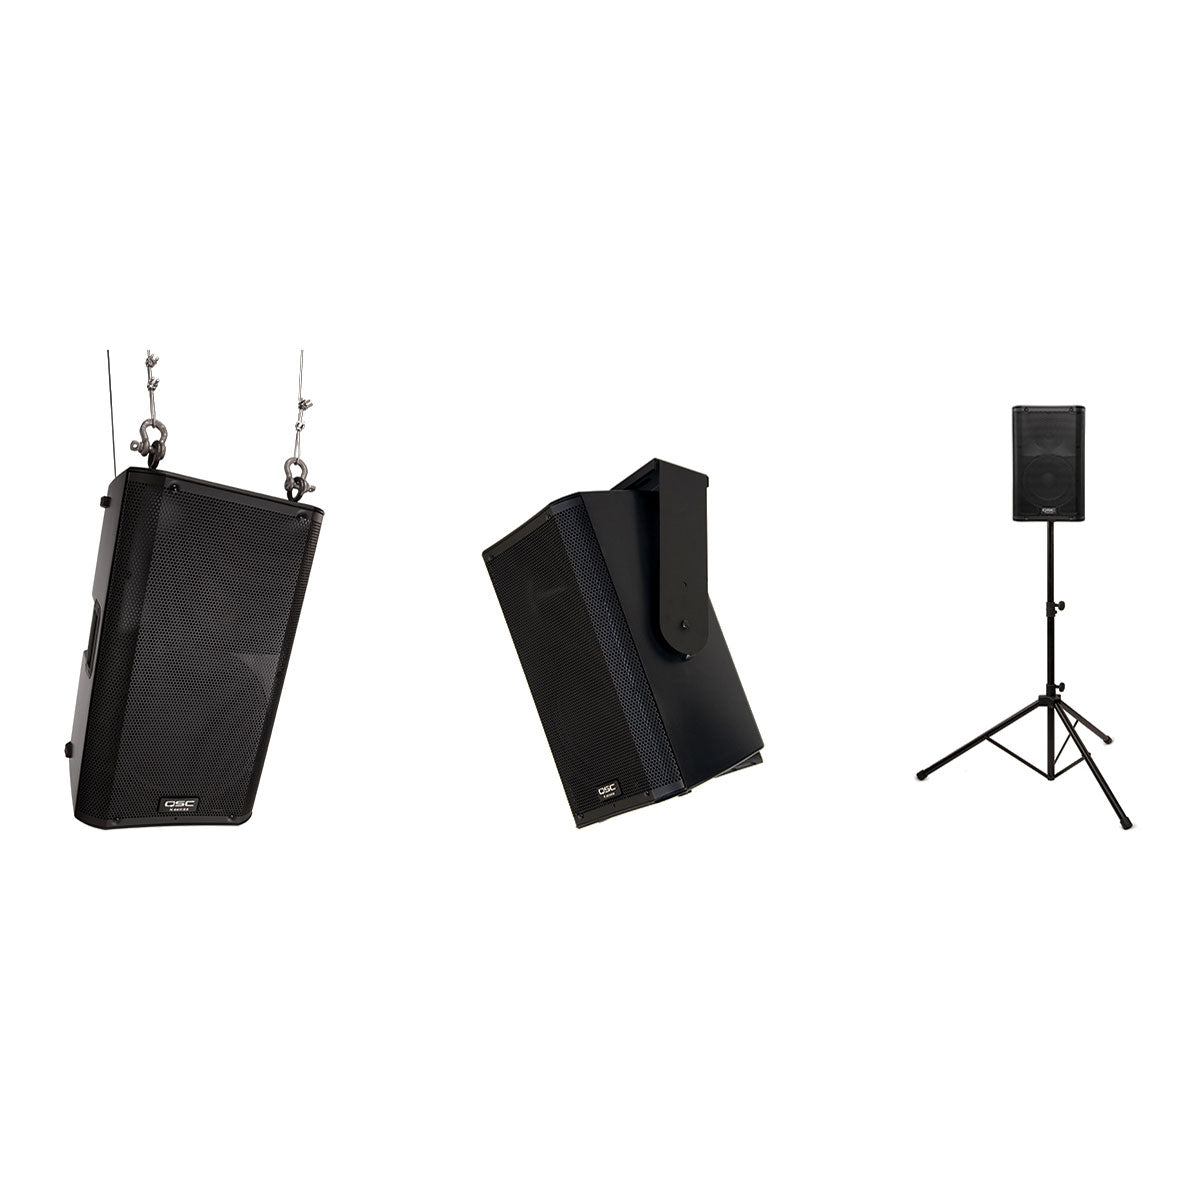 QSC K10 2-Way Active Loud Speaker (Pair) - Isingtec